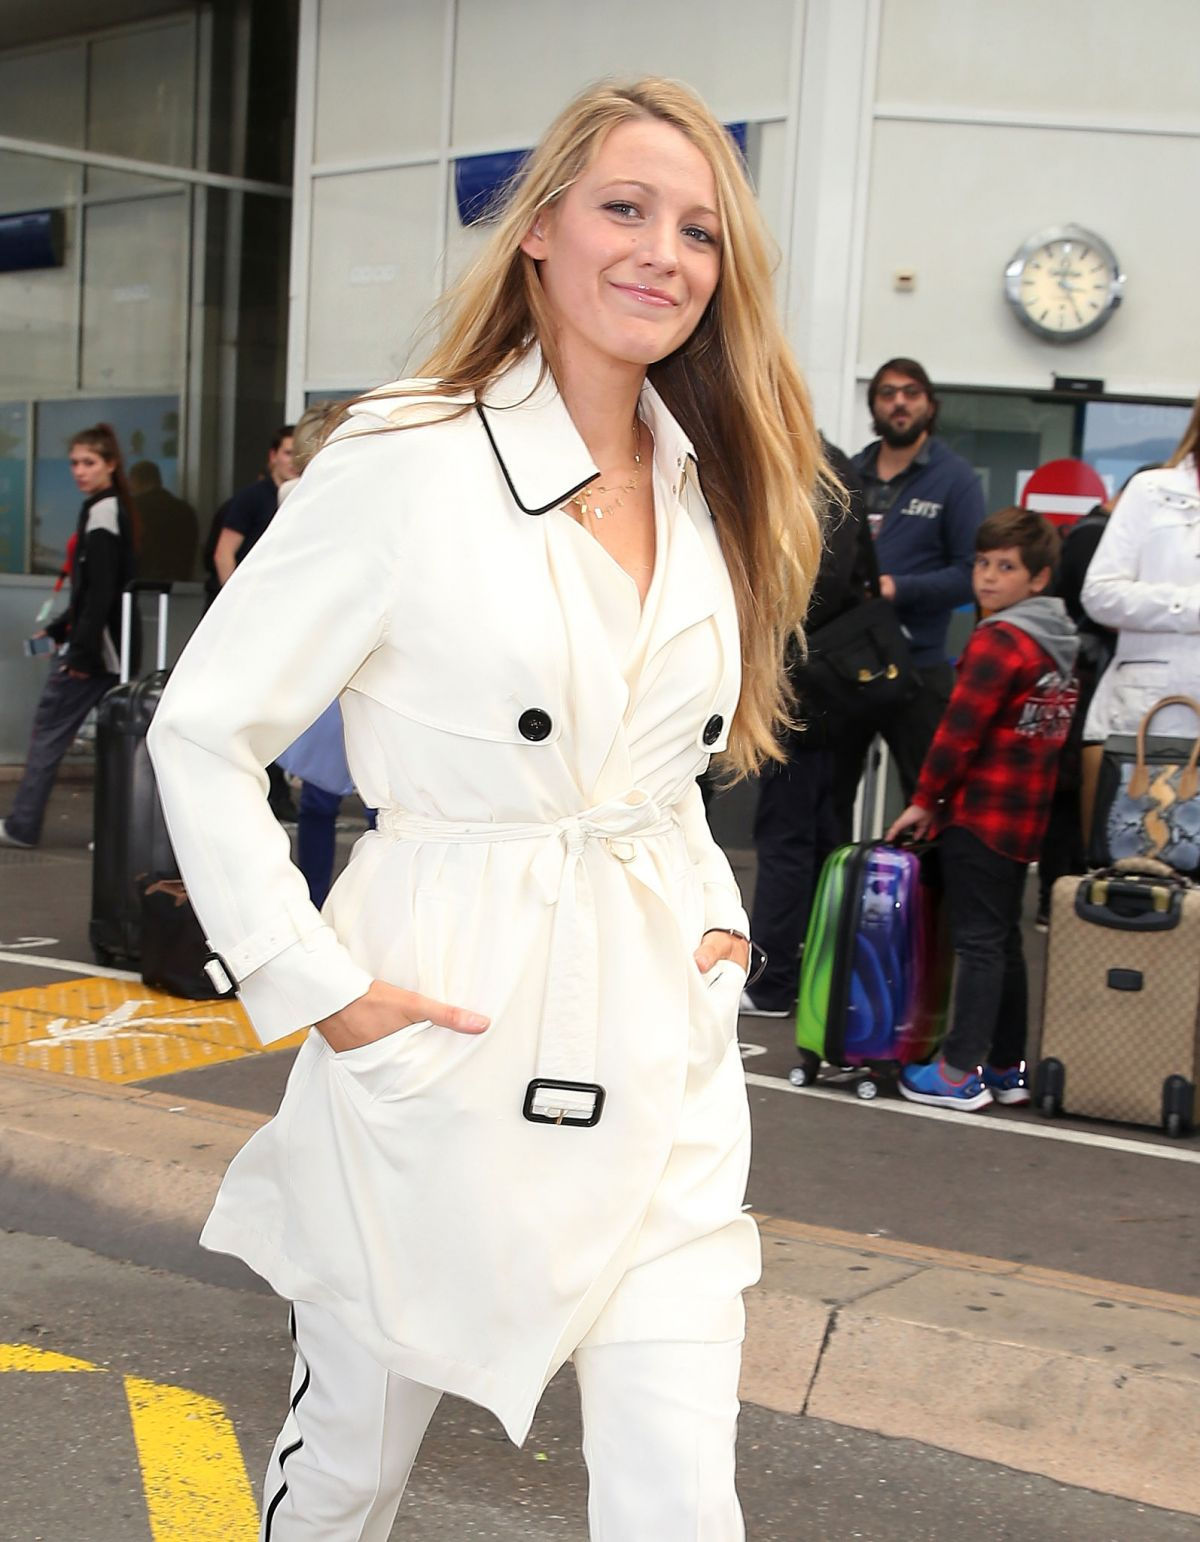 BLAKE LIVELY at Airport in Nice 05/09/2016